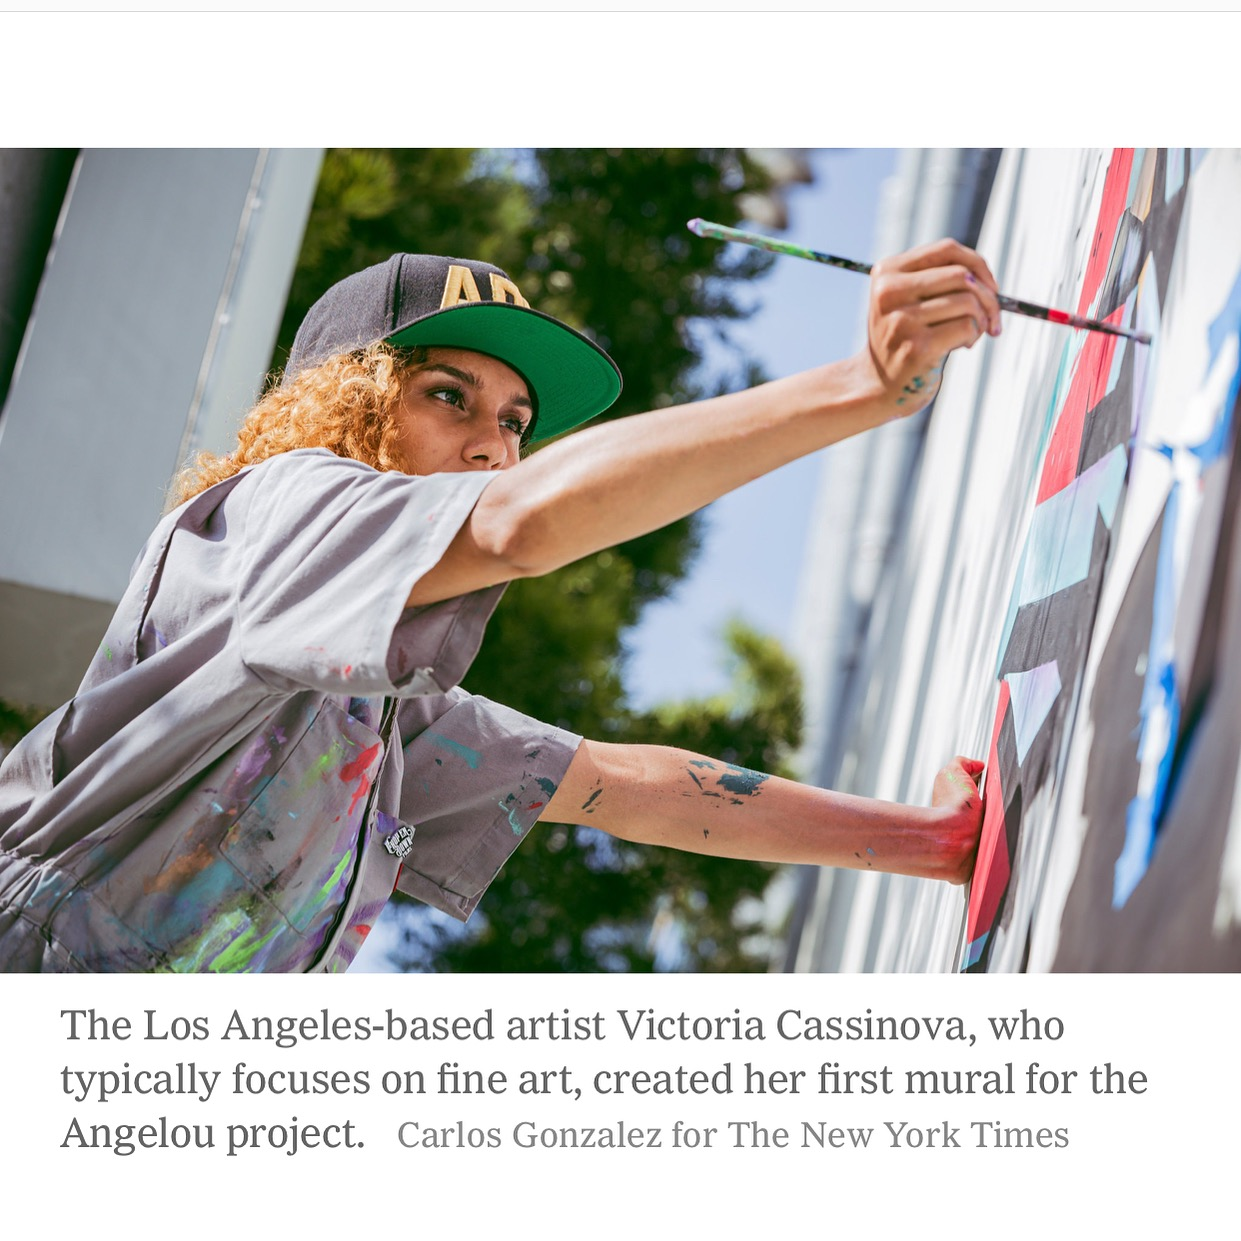 https://www.nytimes.com/2019/07/08/arts/design/maya-angelou-murals-los-angeles.html